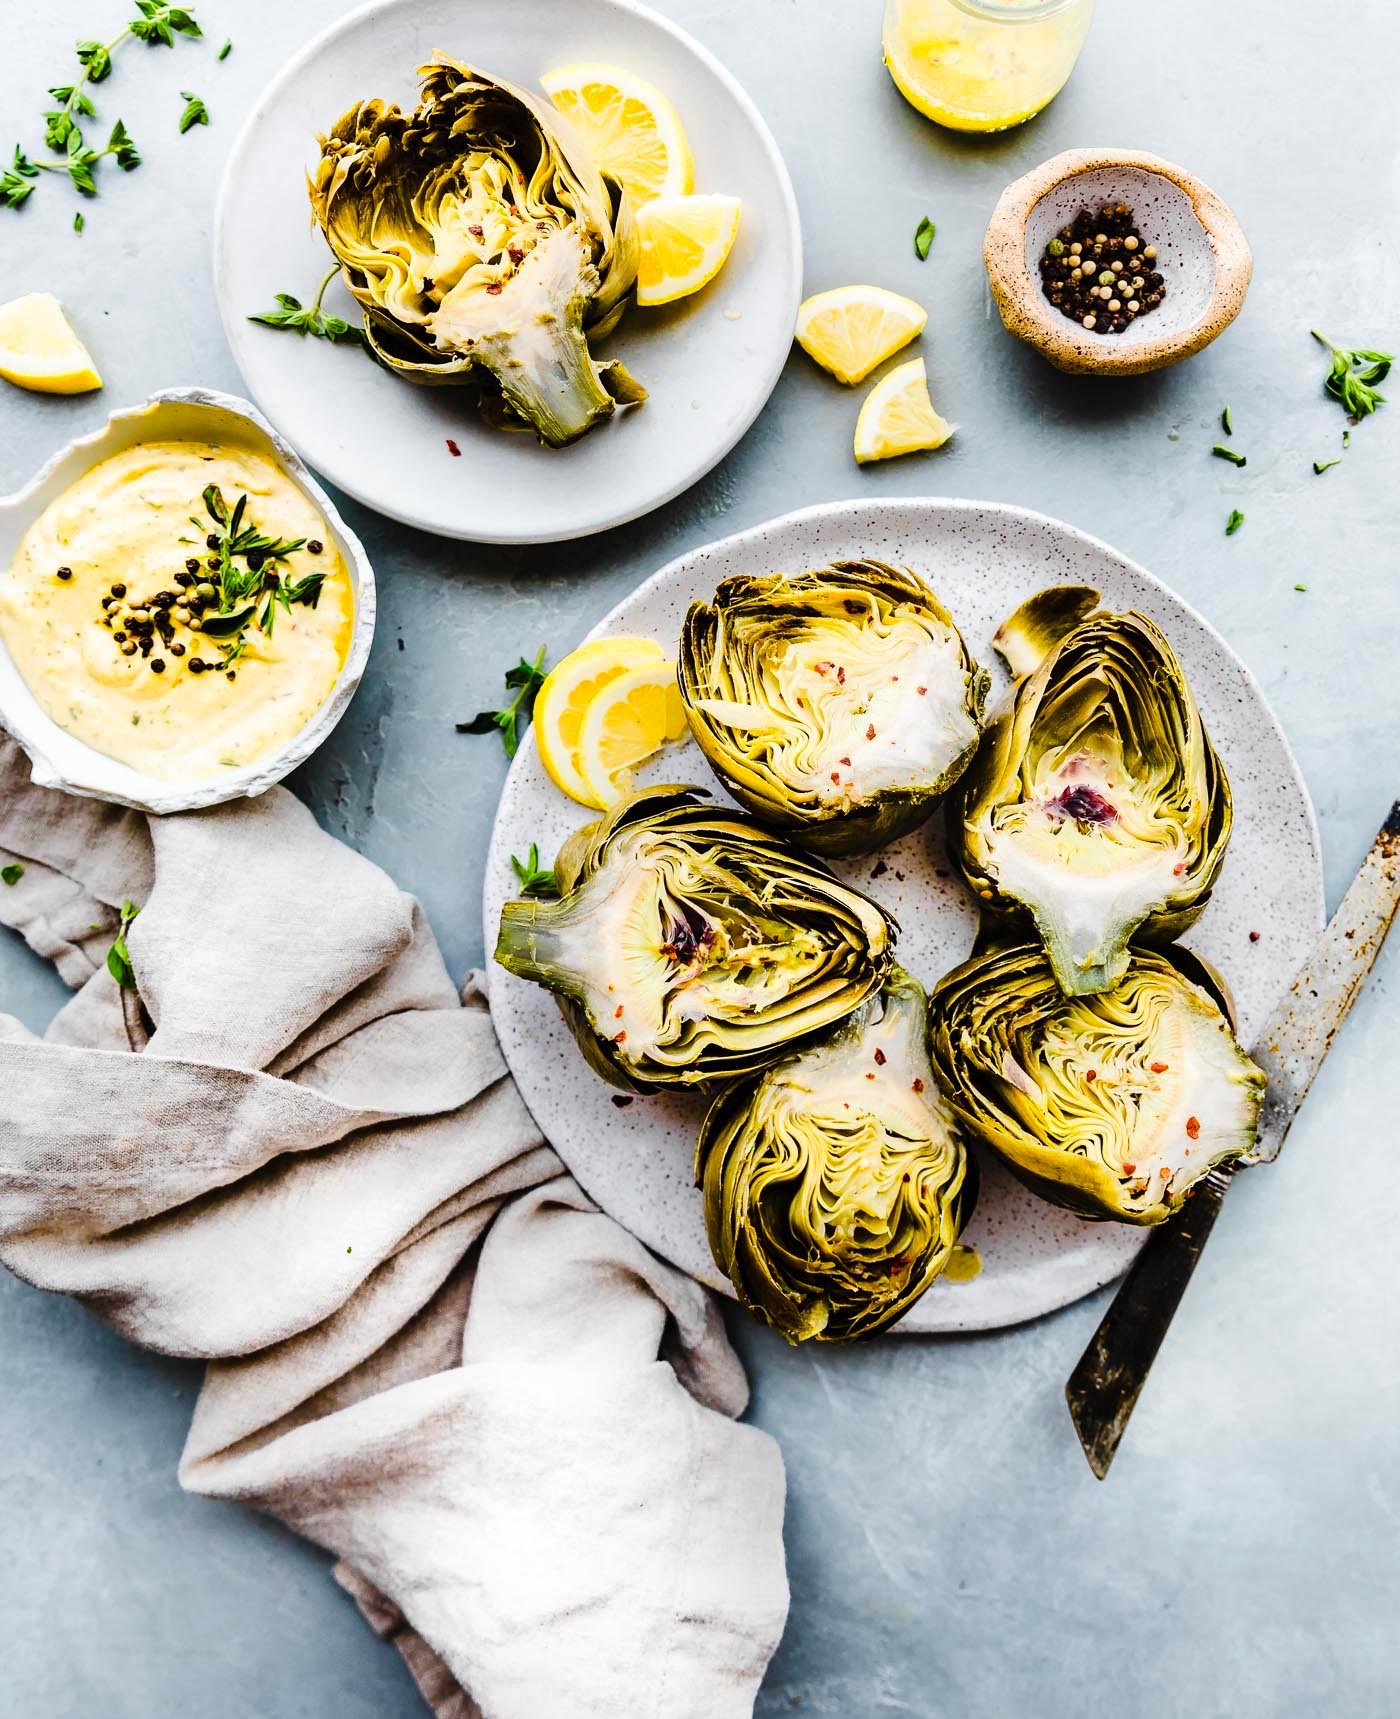 Steamed Artichokes served with Mediterranean Aioli